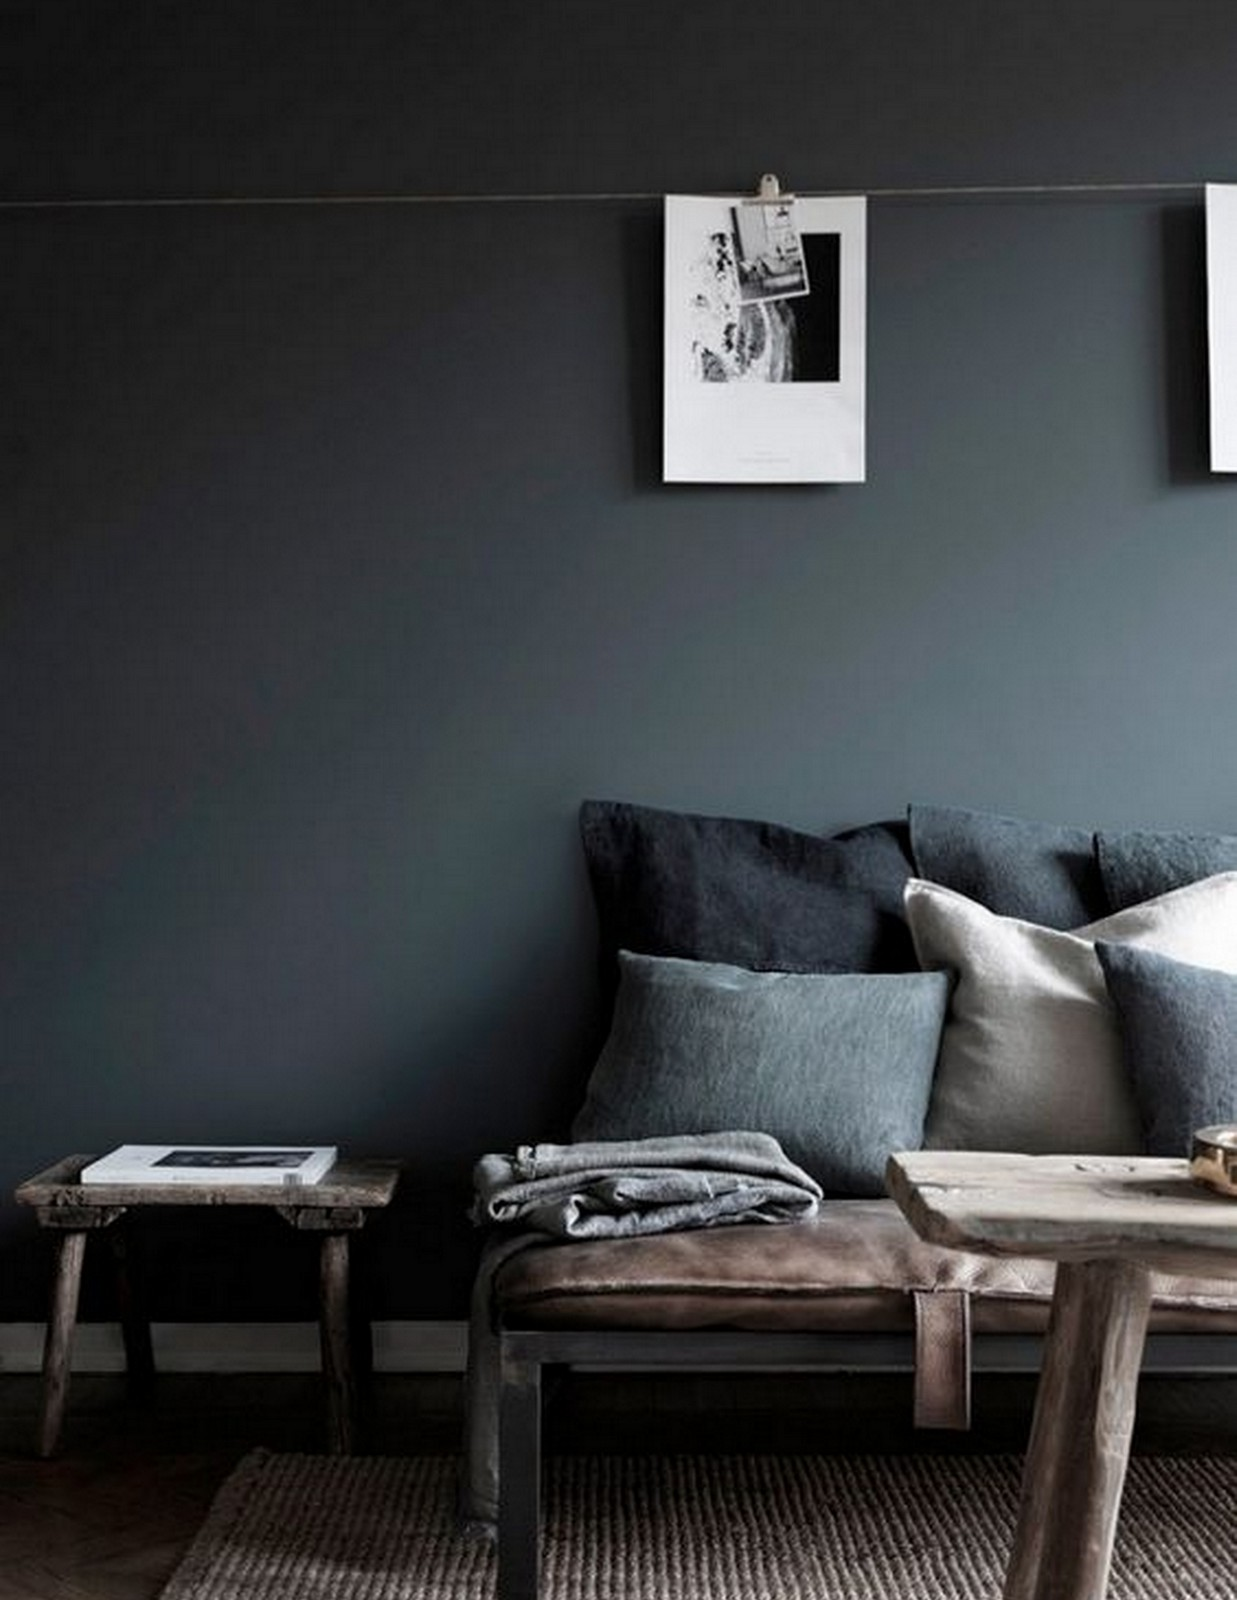 Dark Walls + Pinned Up Artwork